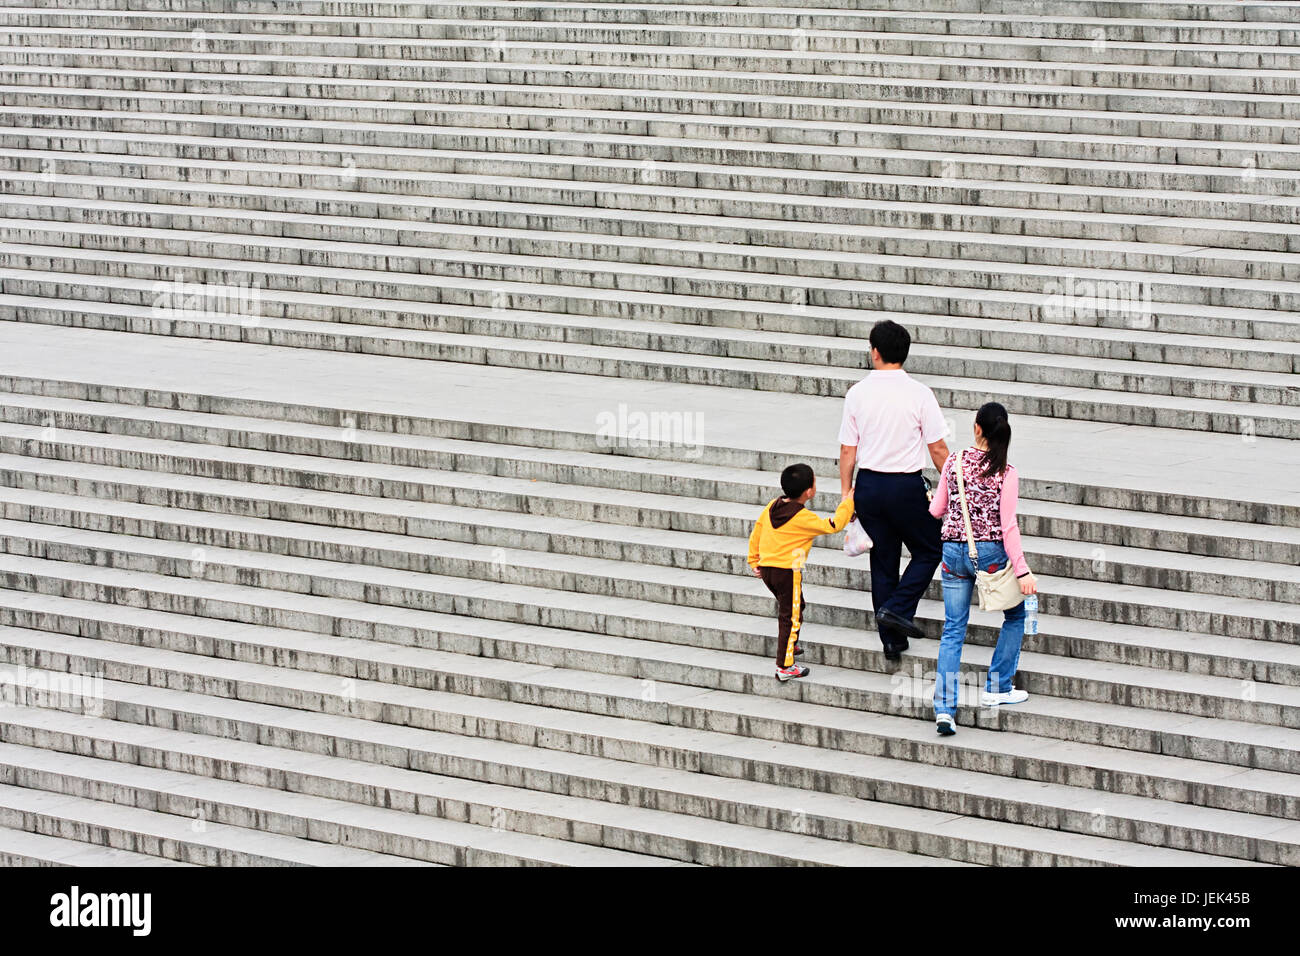 XIAN-MAY 22, 2009. A family's way up on a staircase. Since 1979 China's government retains a one-child policy but - Stock Image